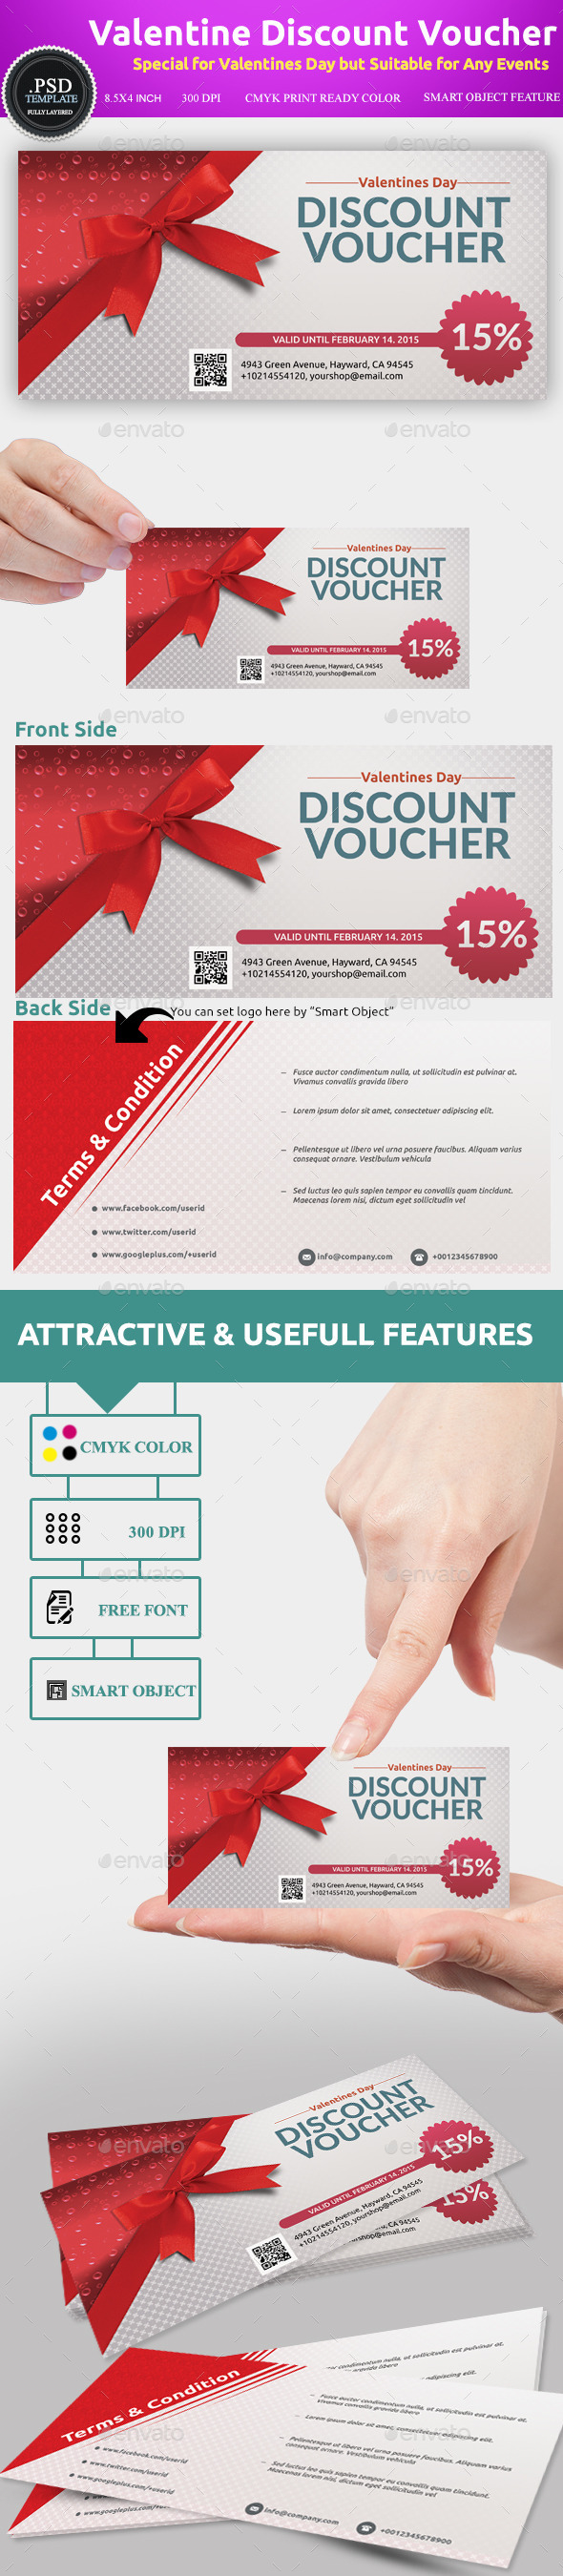 Valentines Discount Voucher Template by utpal443 | GraphicRiver